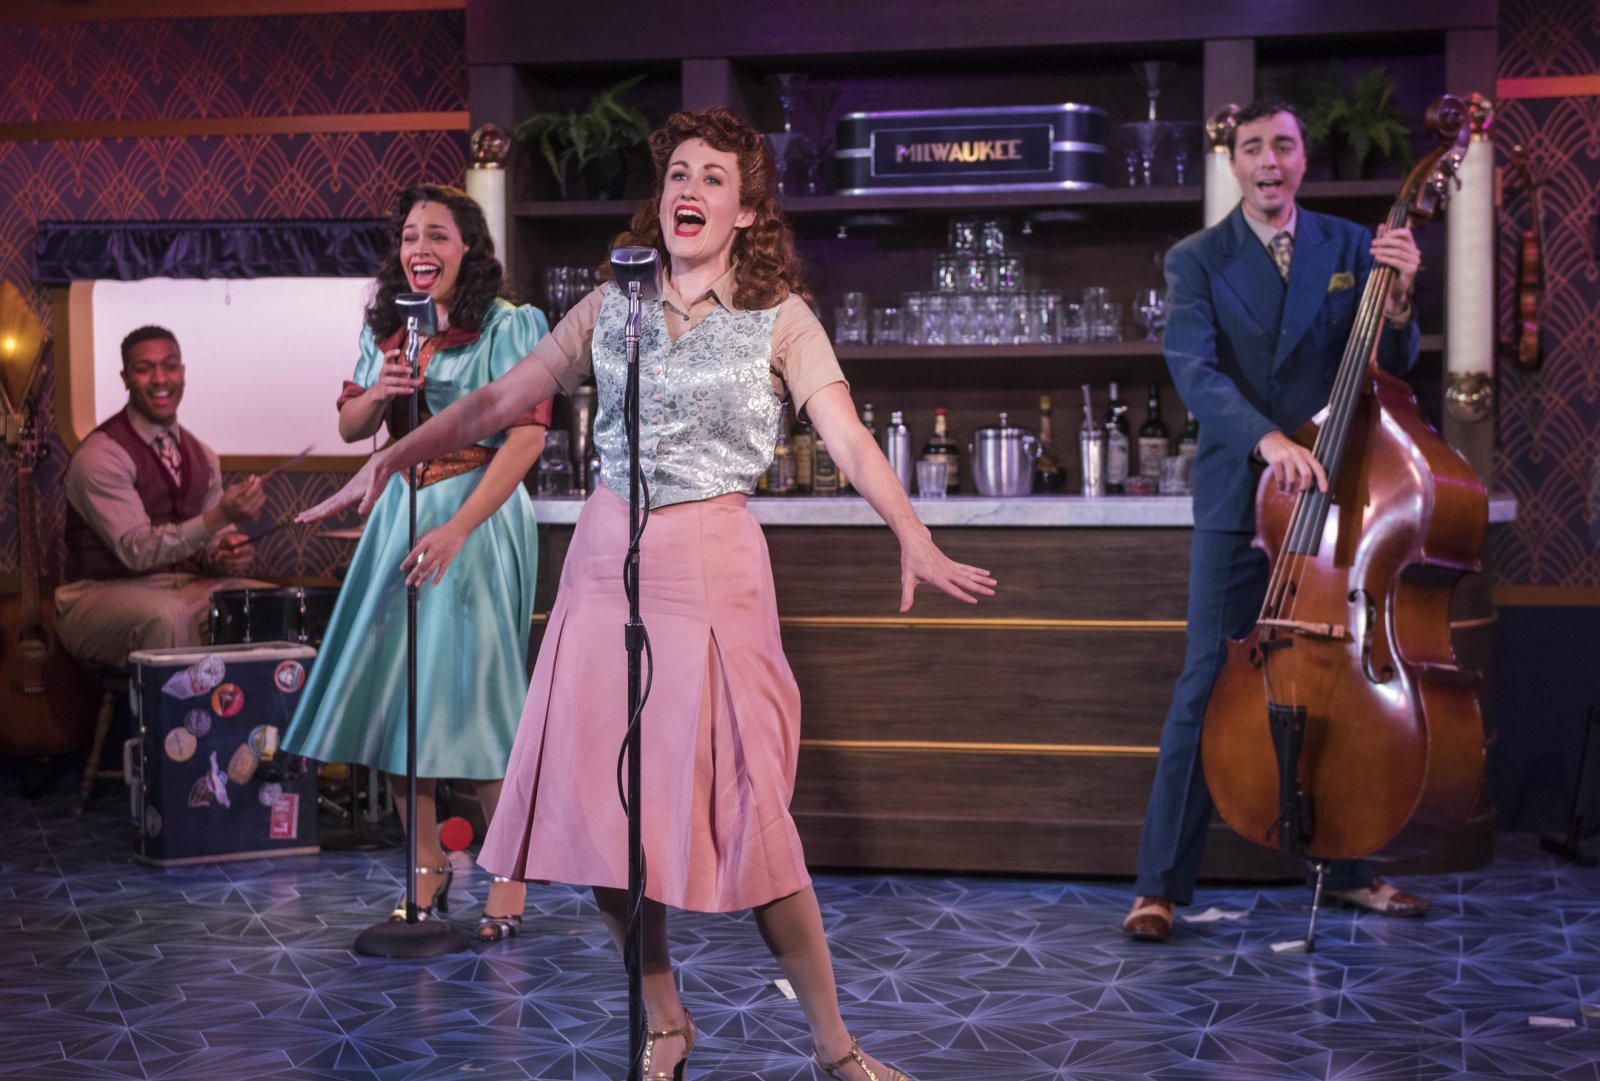 Milwaukee Repertory Theater presents The All Night Strut! in the Stackner Cabaret from November 9, 2018 – January 13, 2019.  Left to Right: Nygel D. Robinson, Katherine Thomas, Kelley Faulkner, Brian Russell Carey